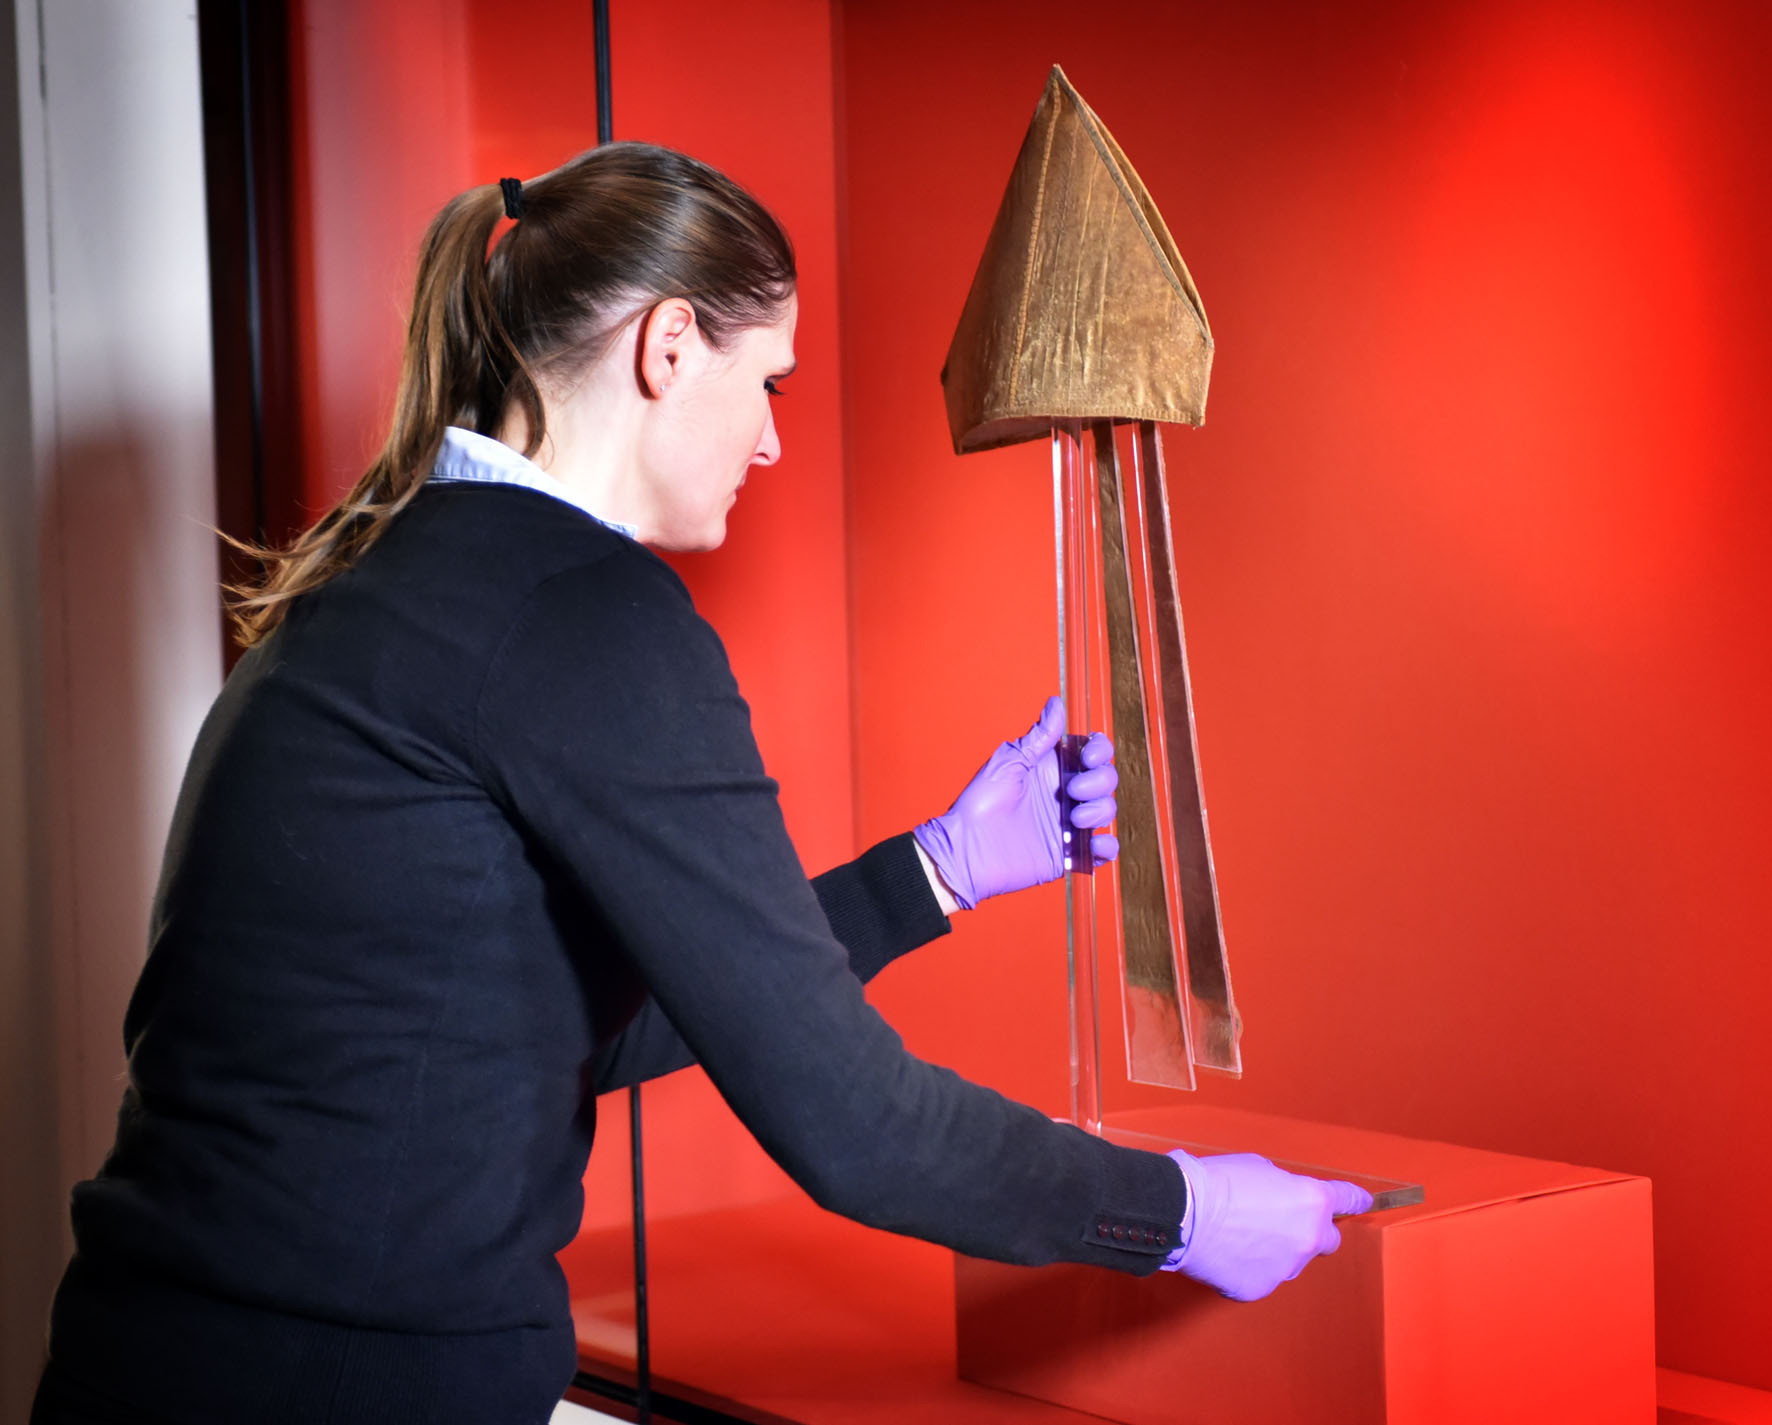 The 800 year old mitre of Archbishop Walter, on loan from Canterbury Cathedral, going on display in Magna Carta: Law Liberty Legacy at the British Library. Photography © Clare Kendall.